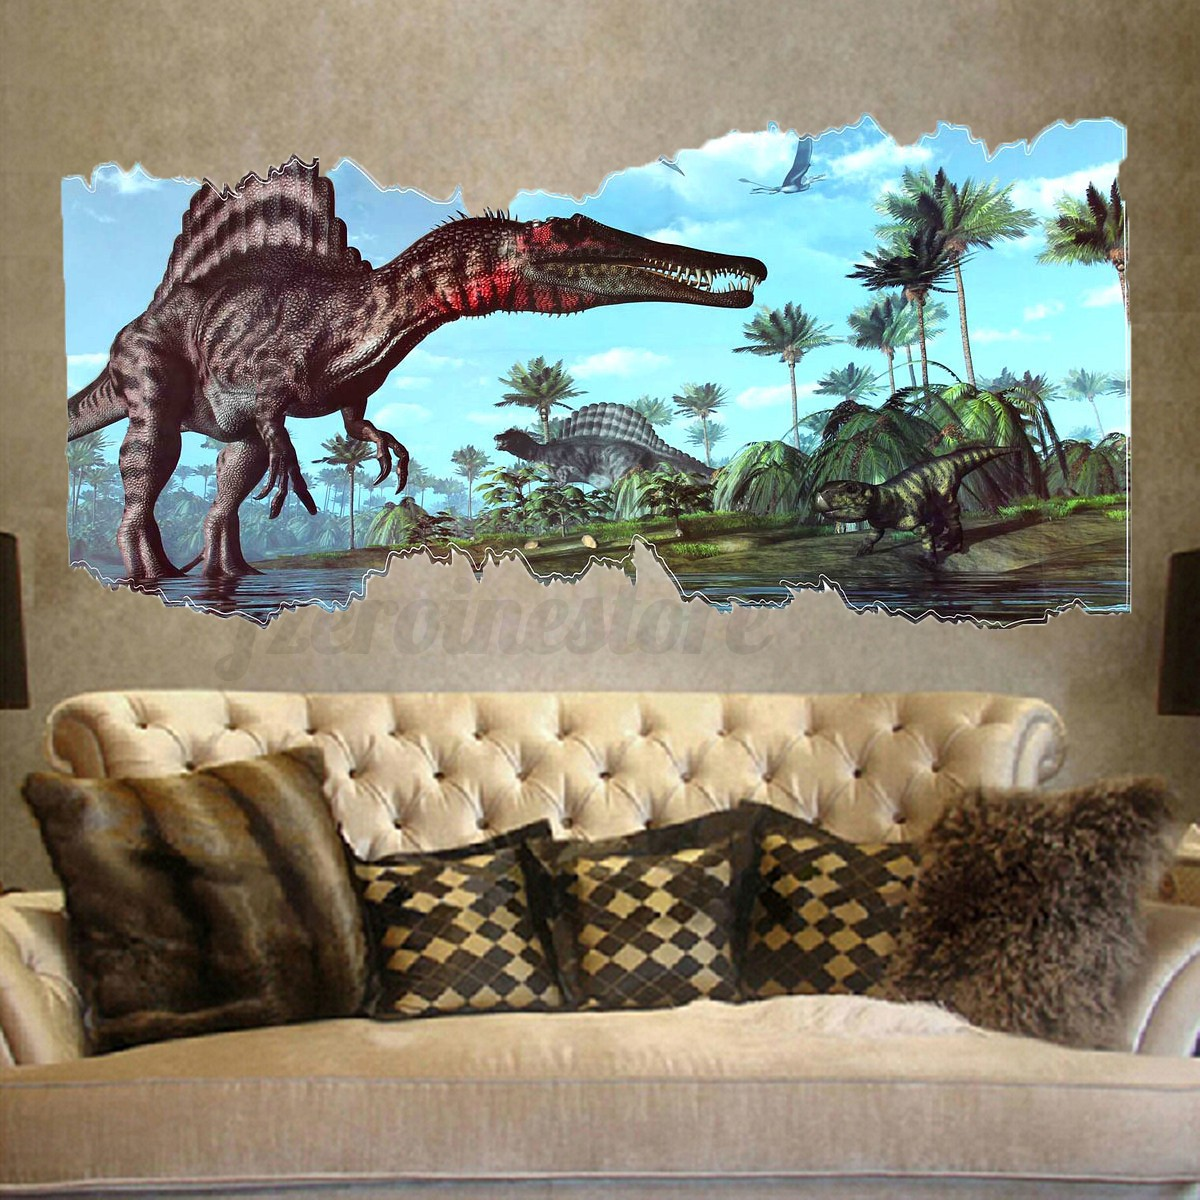 D Jurassic World Park Dinosaur Wall Sticker Kids Room Decal Mural - 3d dinosaur wall decalsd dinosaur wall stickers for kids bedrooms jurassic world wall